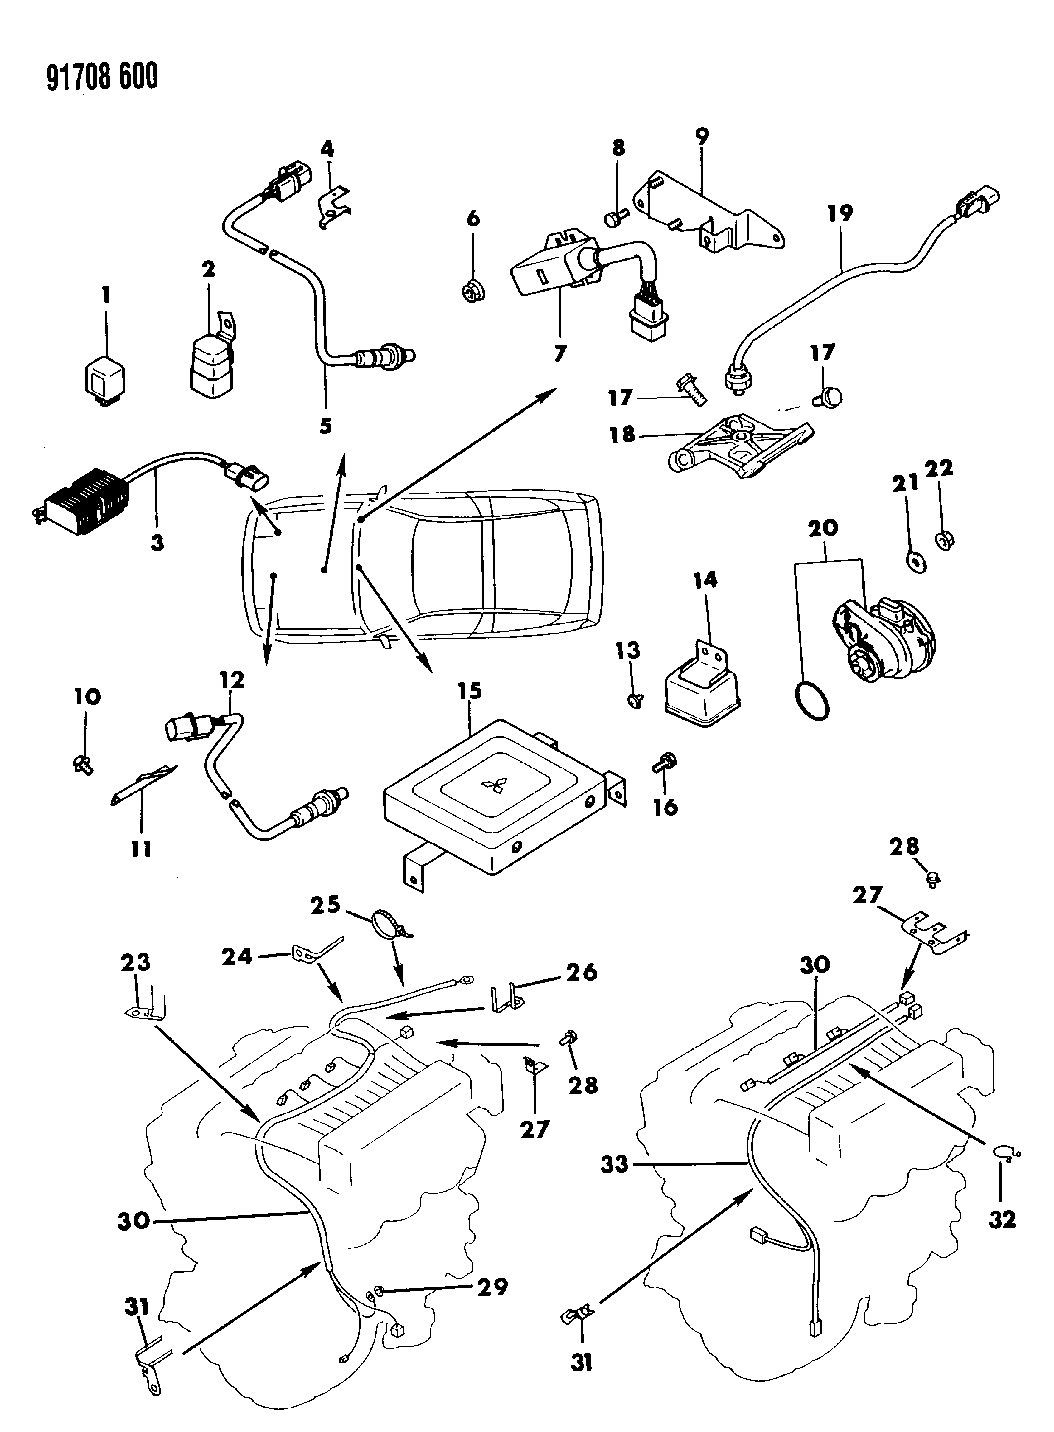 1991 Dodge Stealth Switches Electrical Controls Wiring Diagram Thumbnail 1